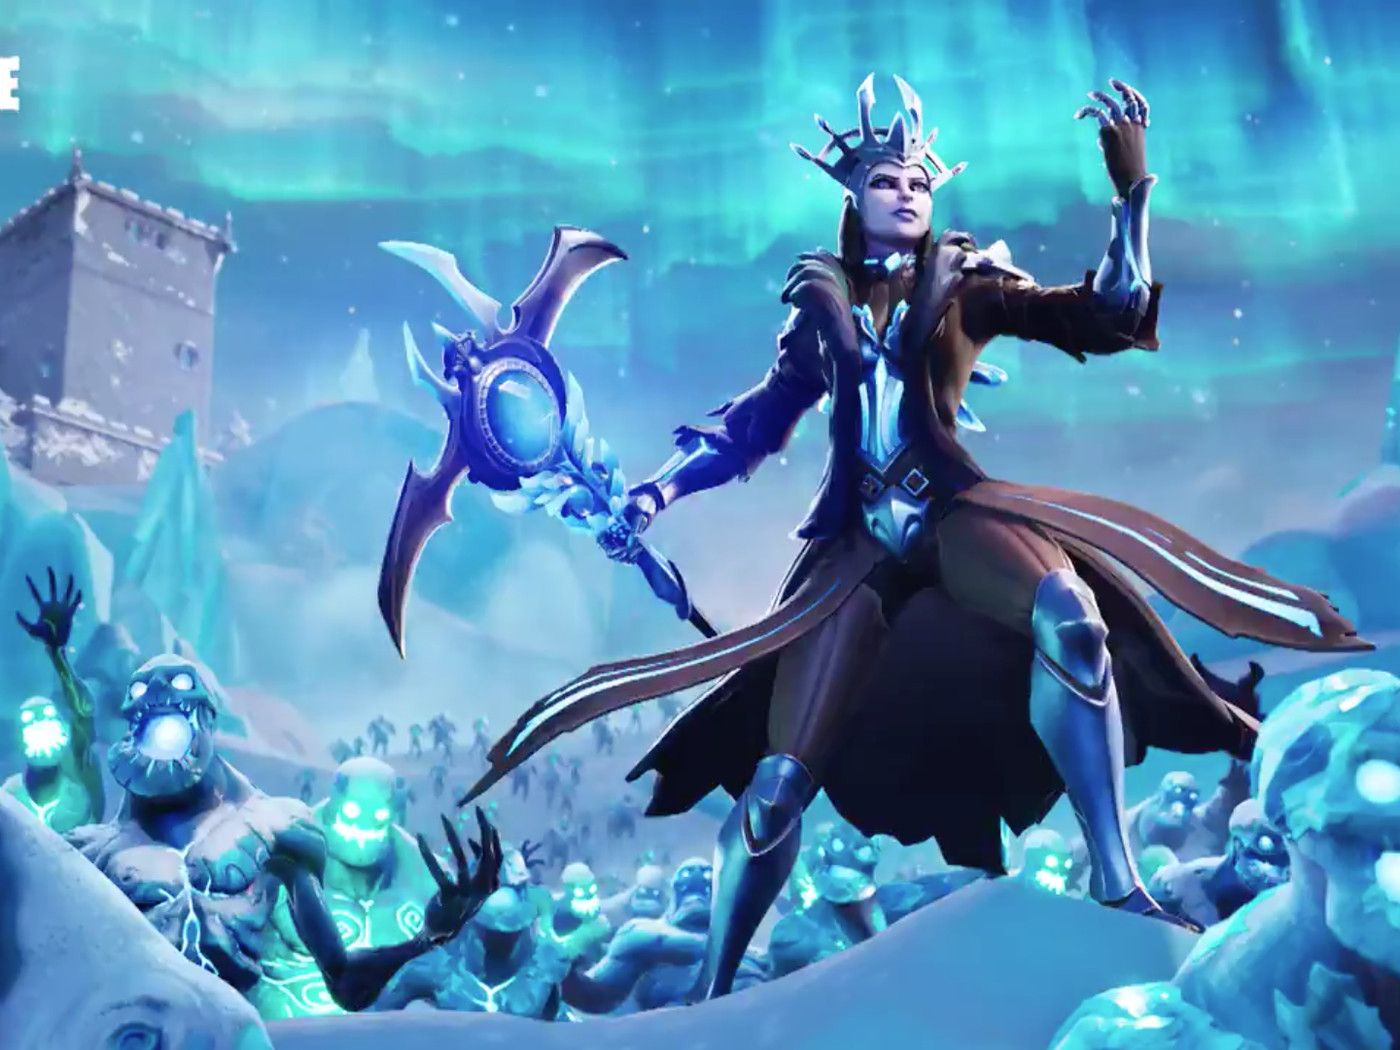 Fortnite Ice King Wallpapers Top Free Fortnite Ice King Backgrounds Wallpaperaccess